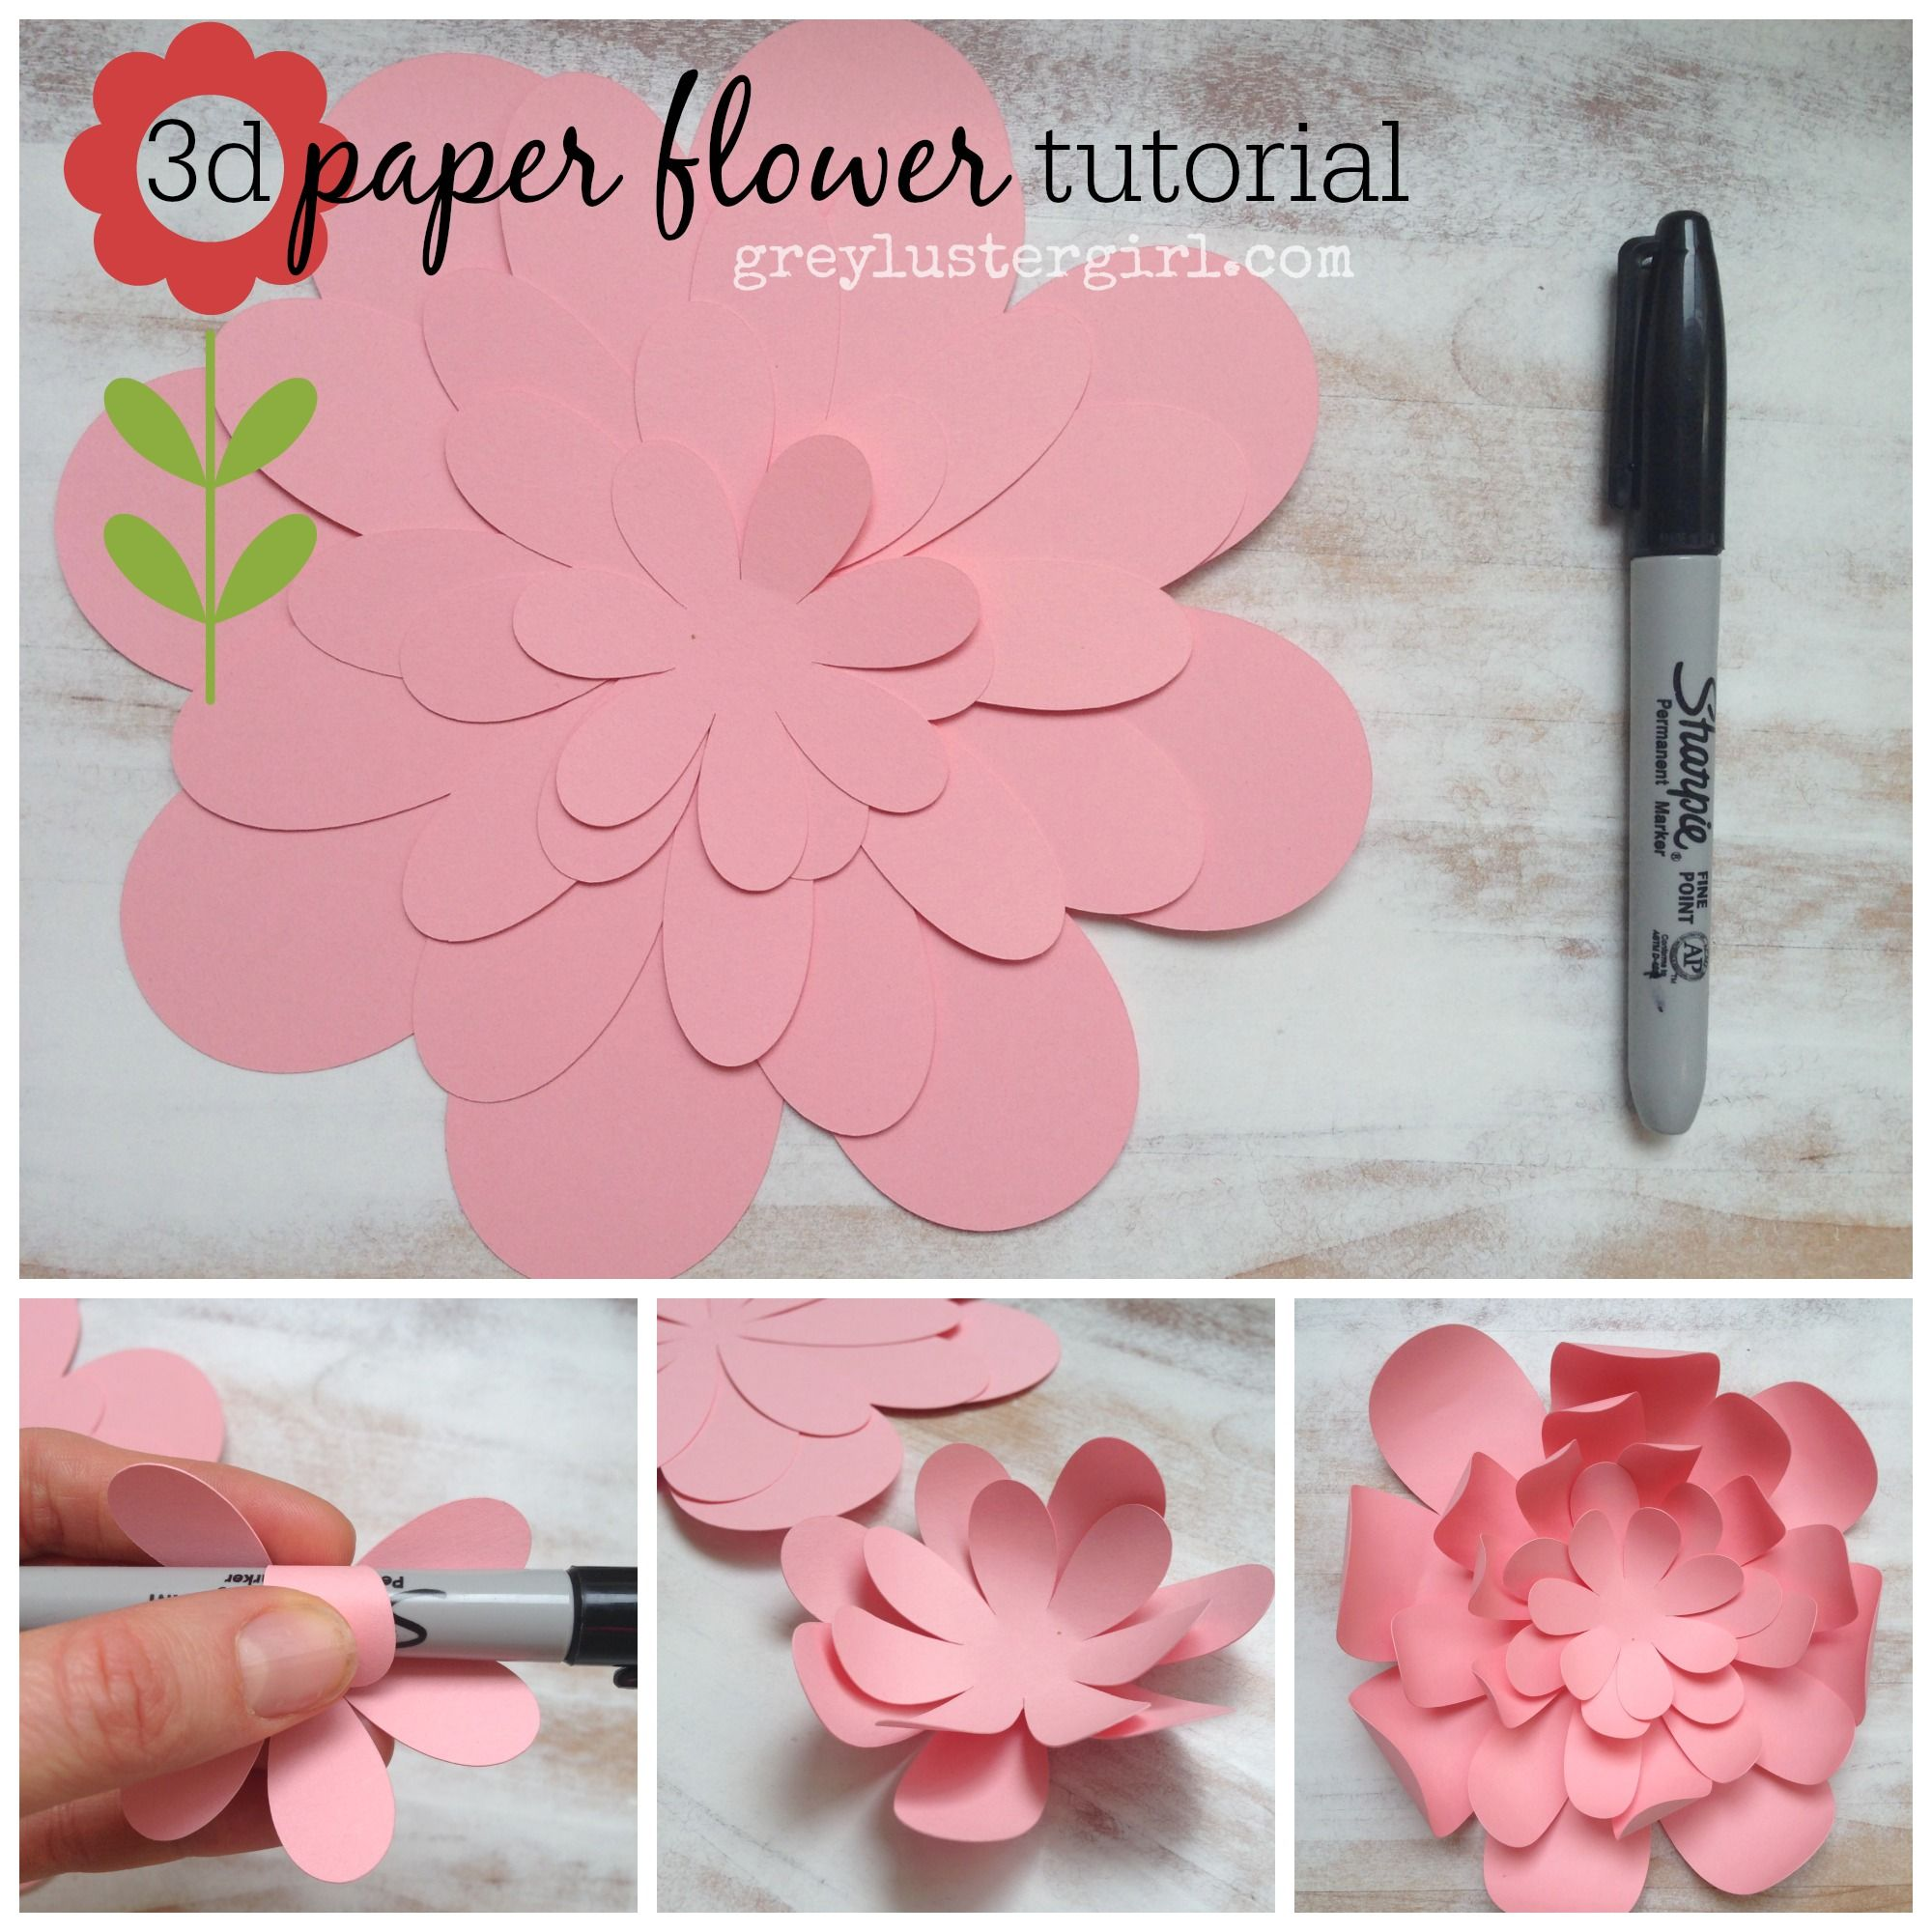 3d Paper Flower Tutorial Awesome Idea Must Try Embrace